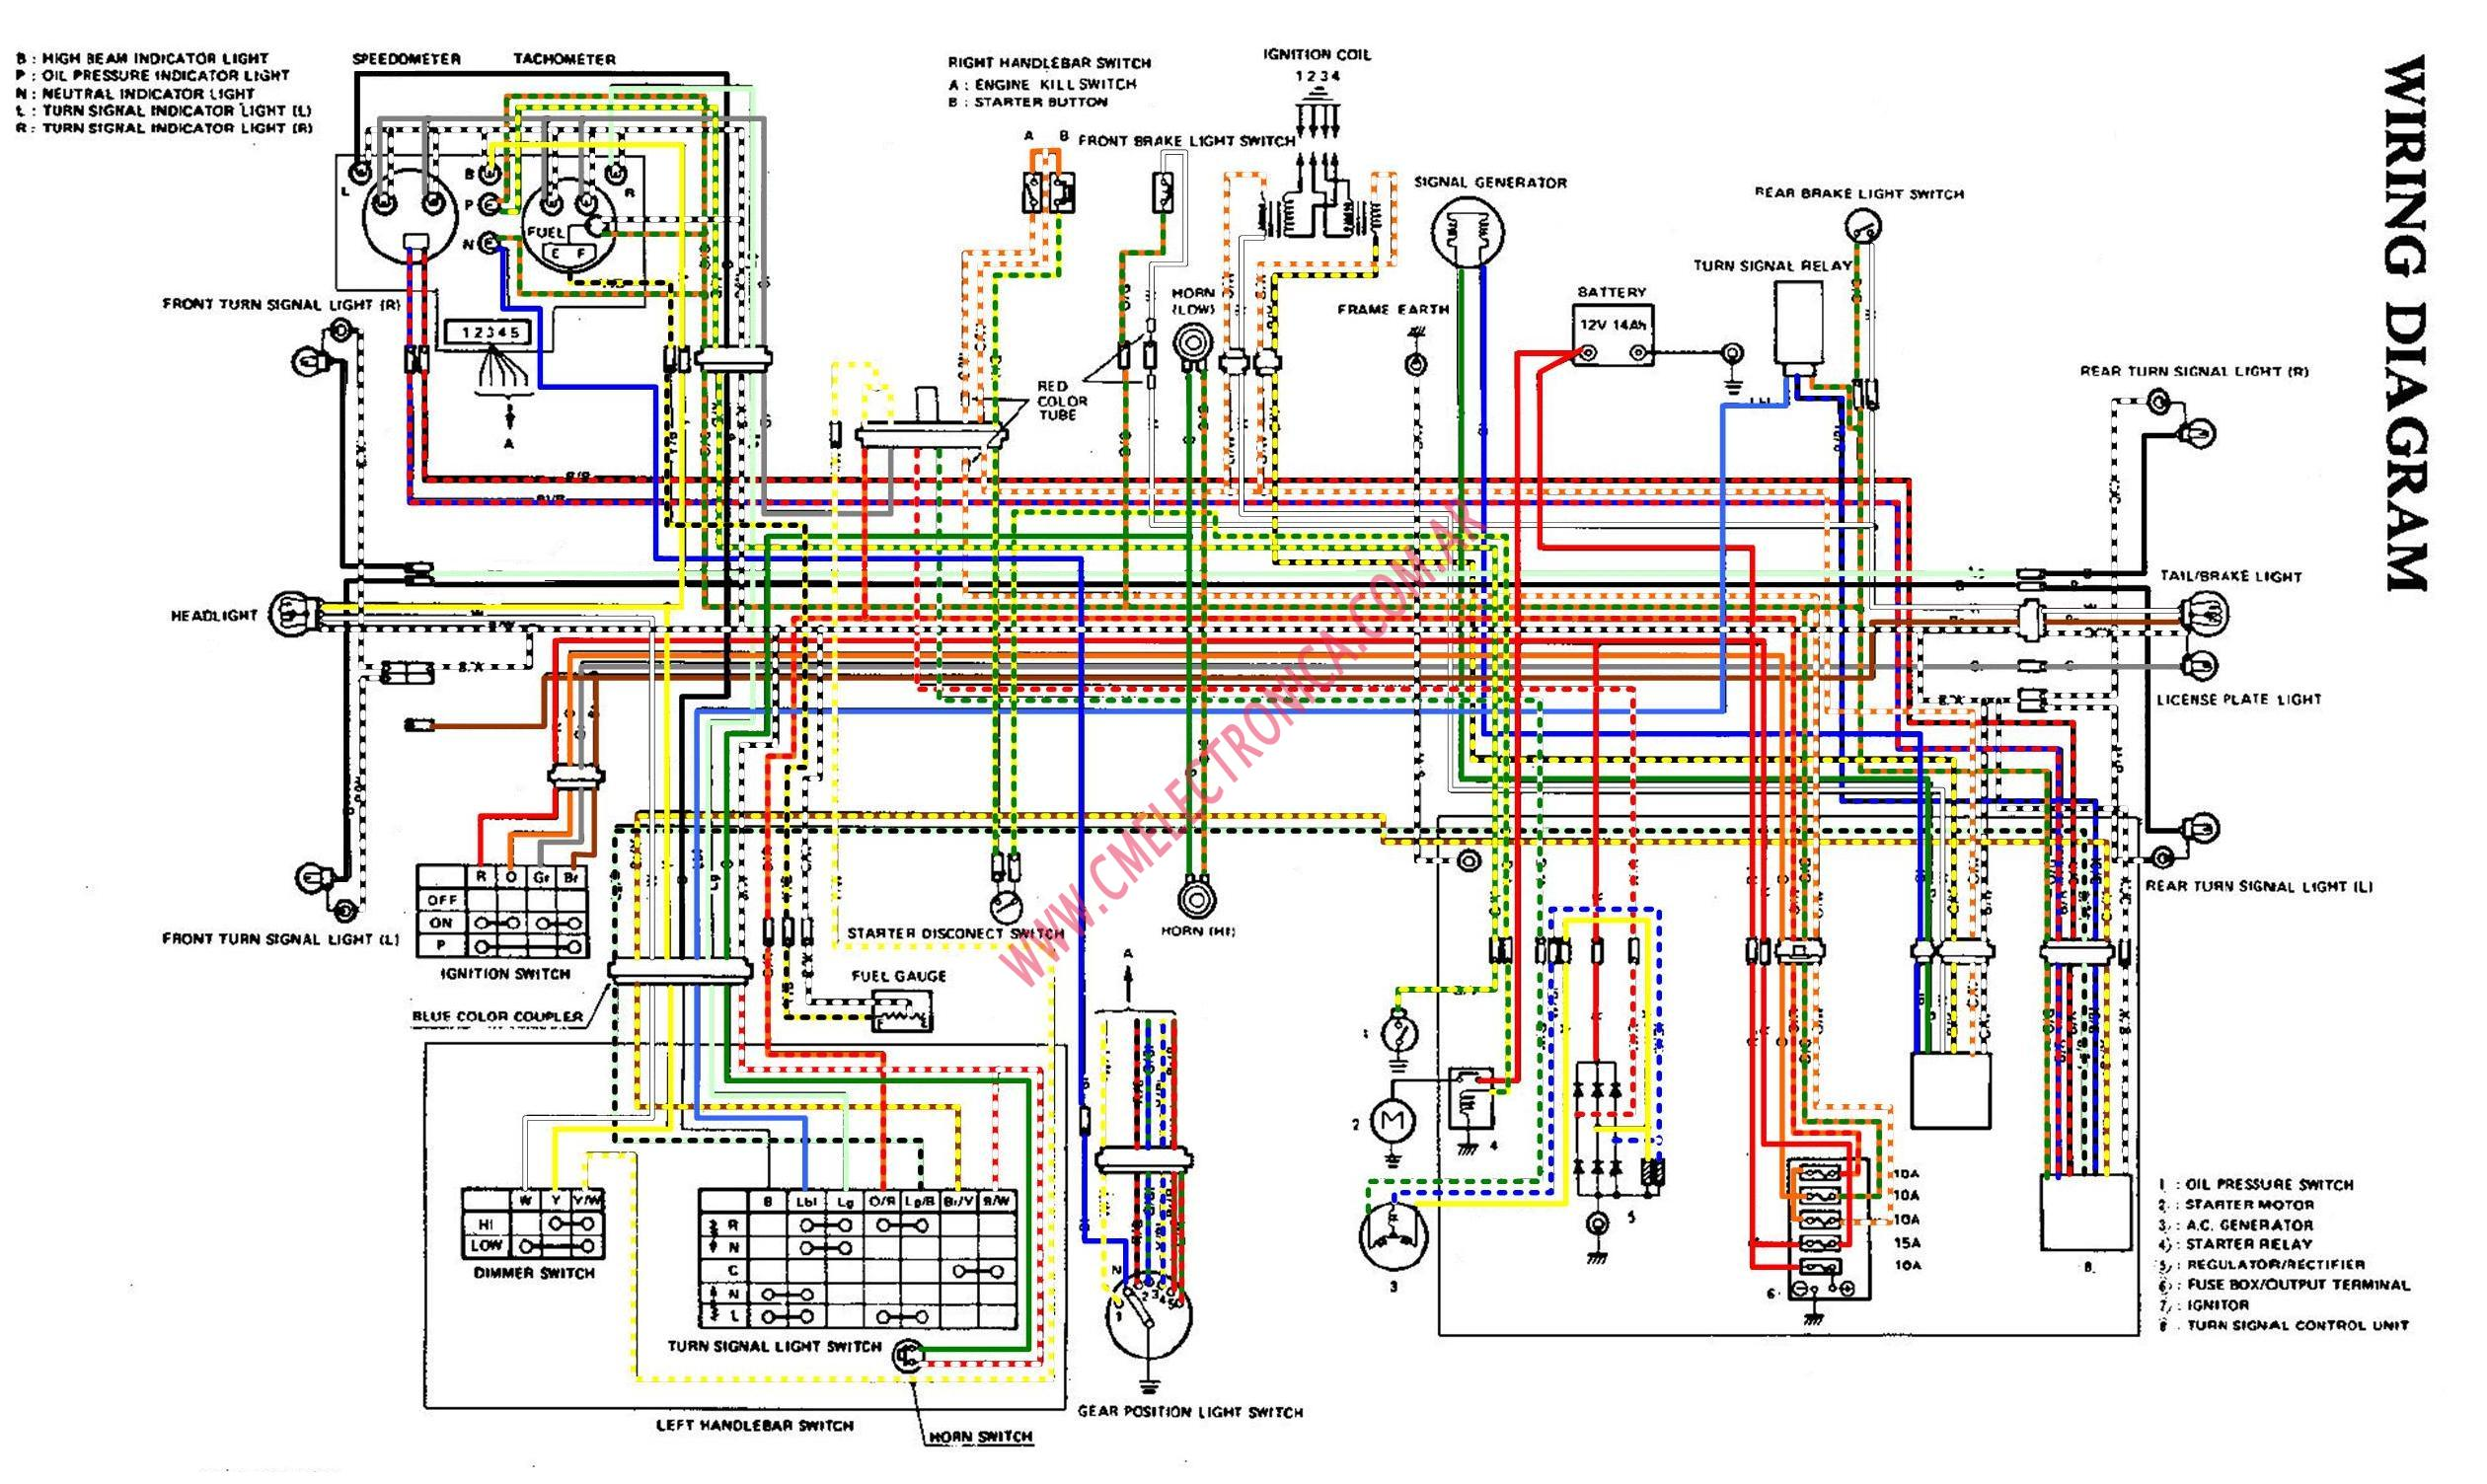 Suzuki Gp100 Wiring Diagram Libraries Katana 600 Gs400 Diagrams Scematic1980 Gs 1000 Simple Schema